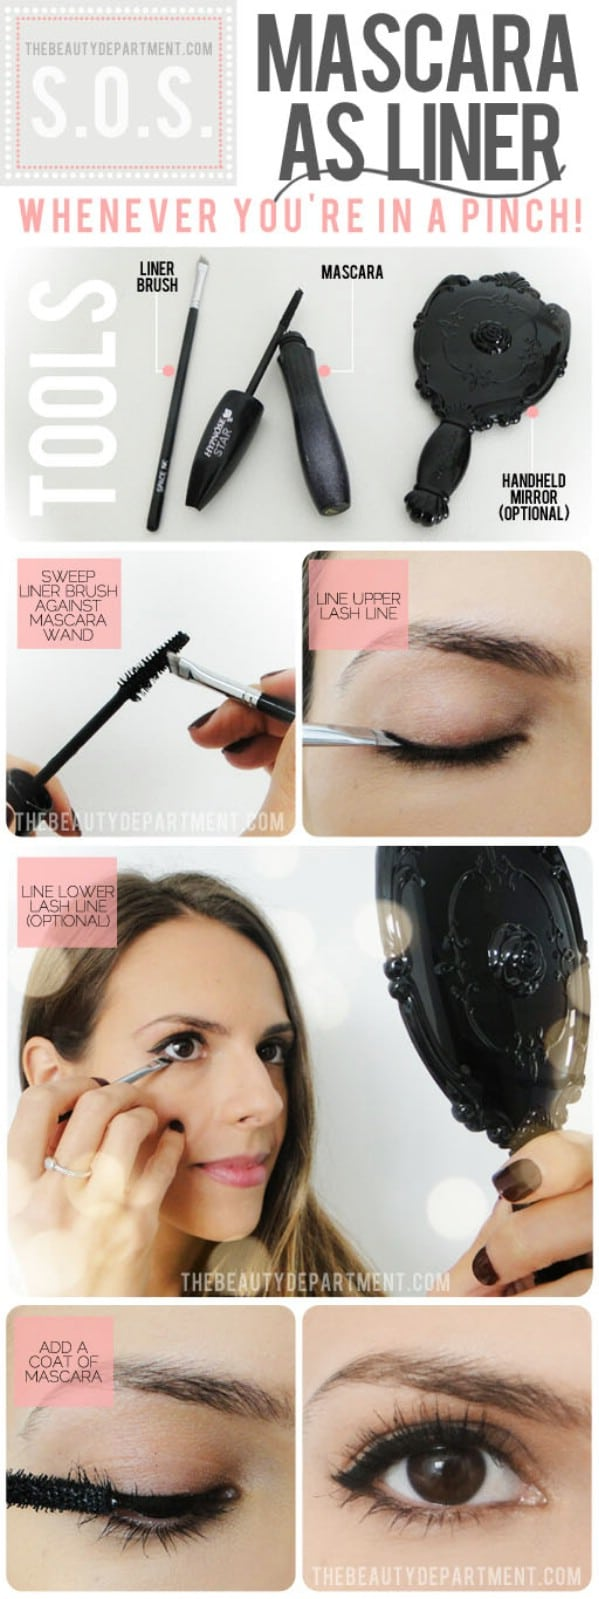 Use Mascara as Eye Liner - 40 DIY Beauty Hacks That Are Borderline Genius